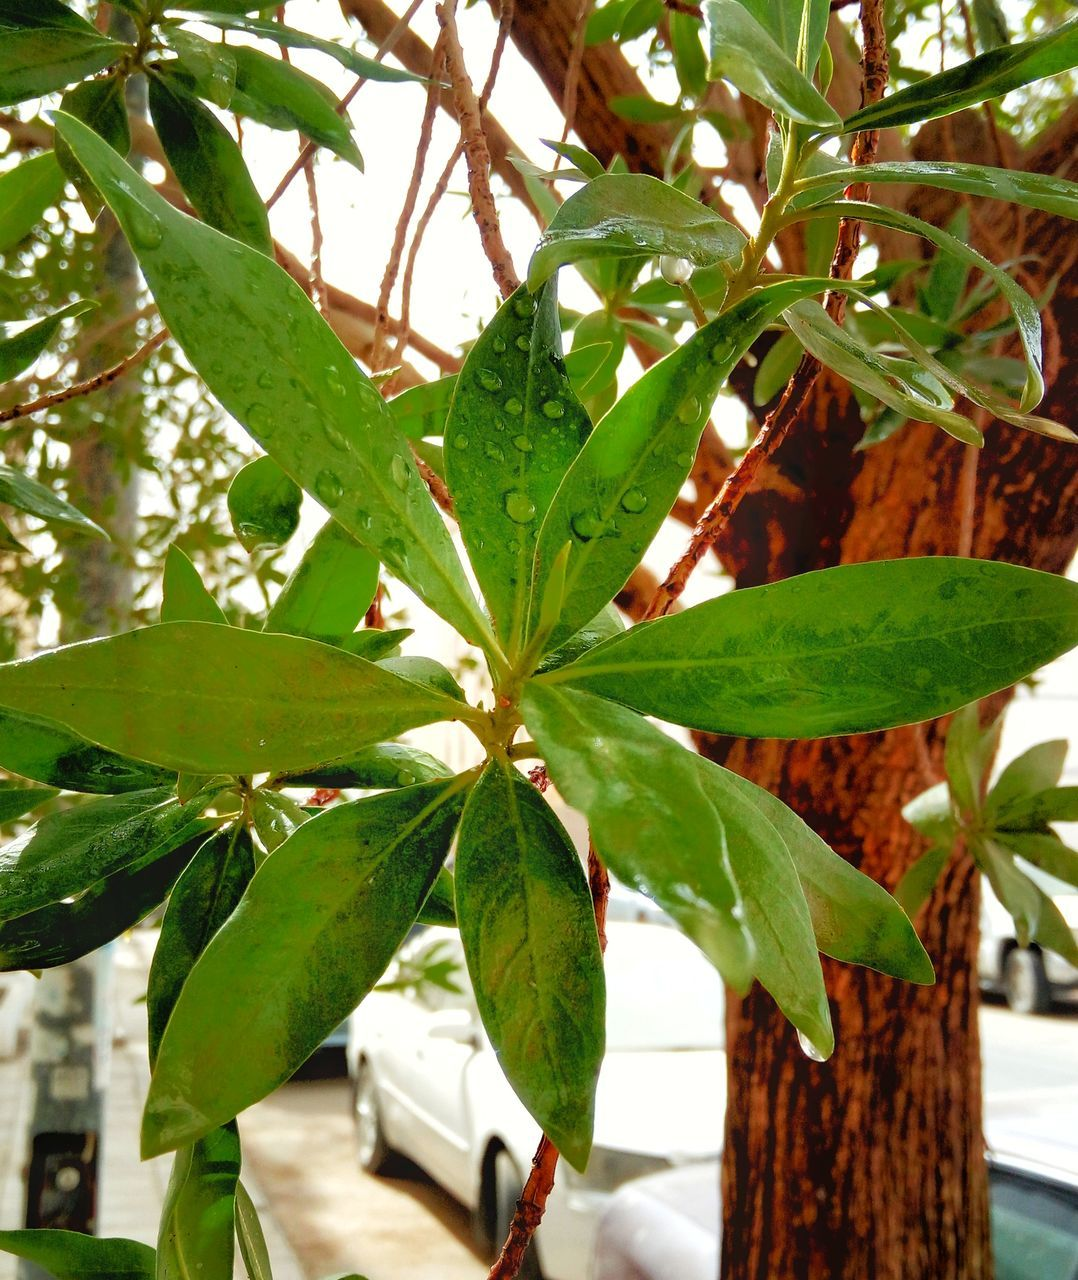 leaf, green color, growth, plant, close-up, nature, no people, day, outdoors, beauty in nature, tree, freshness